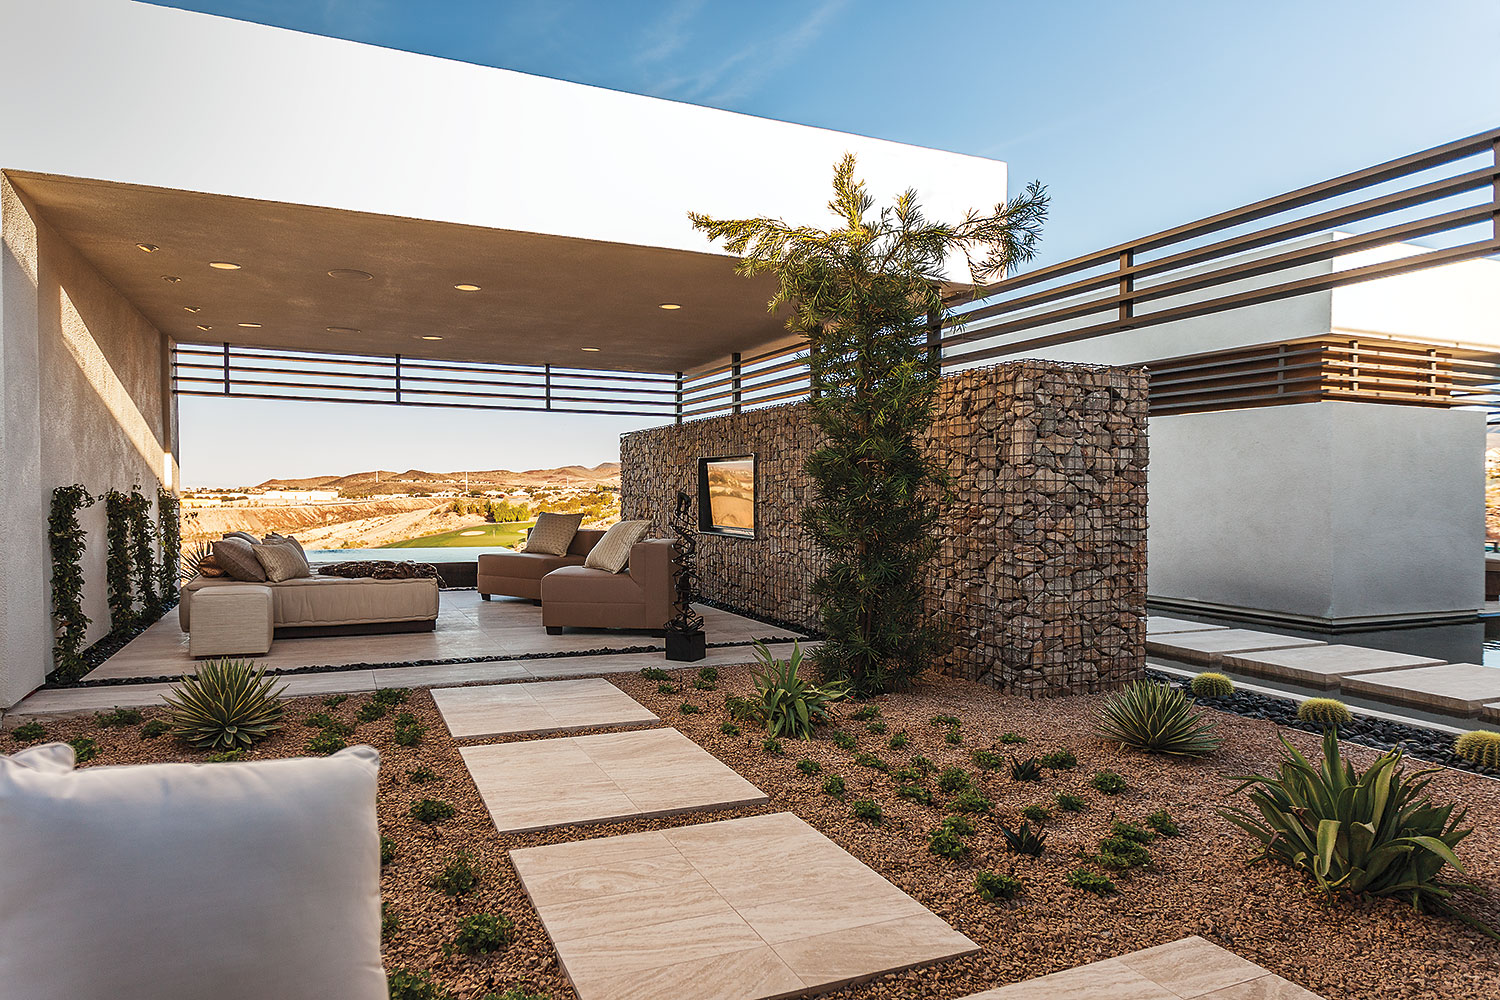 Construction Terrasse Bois Sur Pilotis The Indoor-outdoor Relationship: A New American Home Specialty